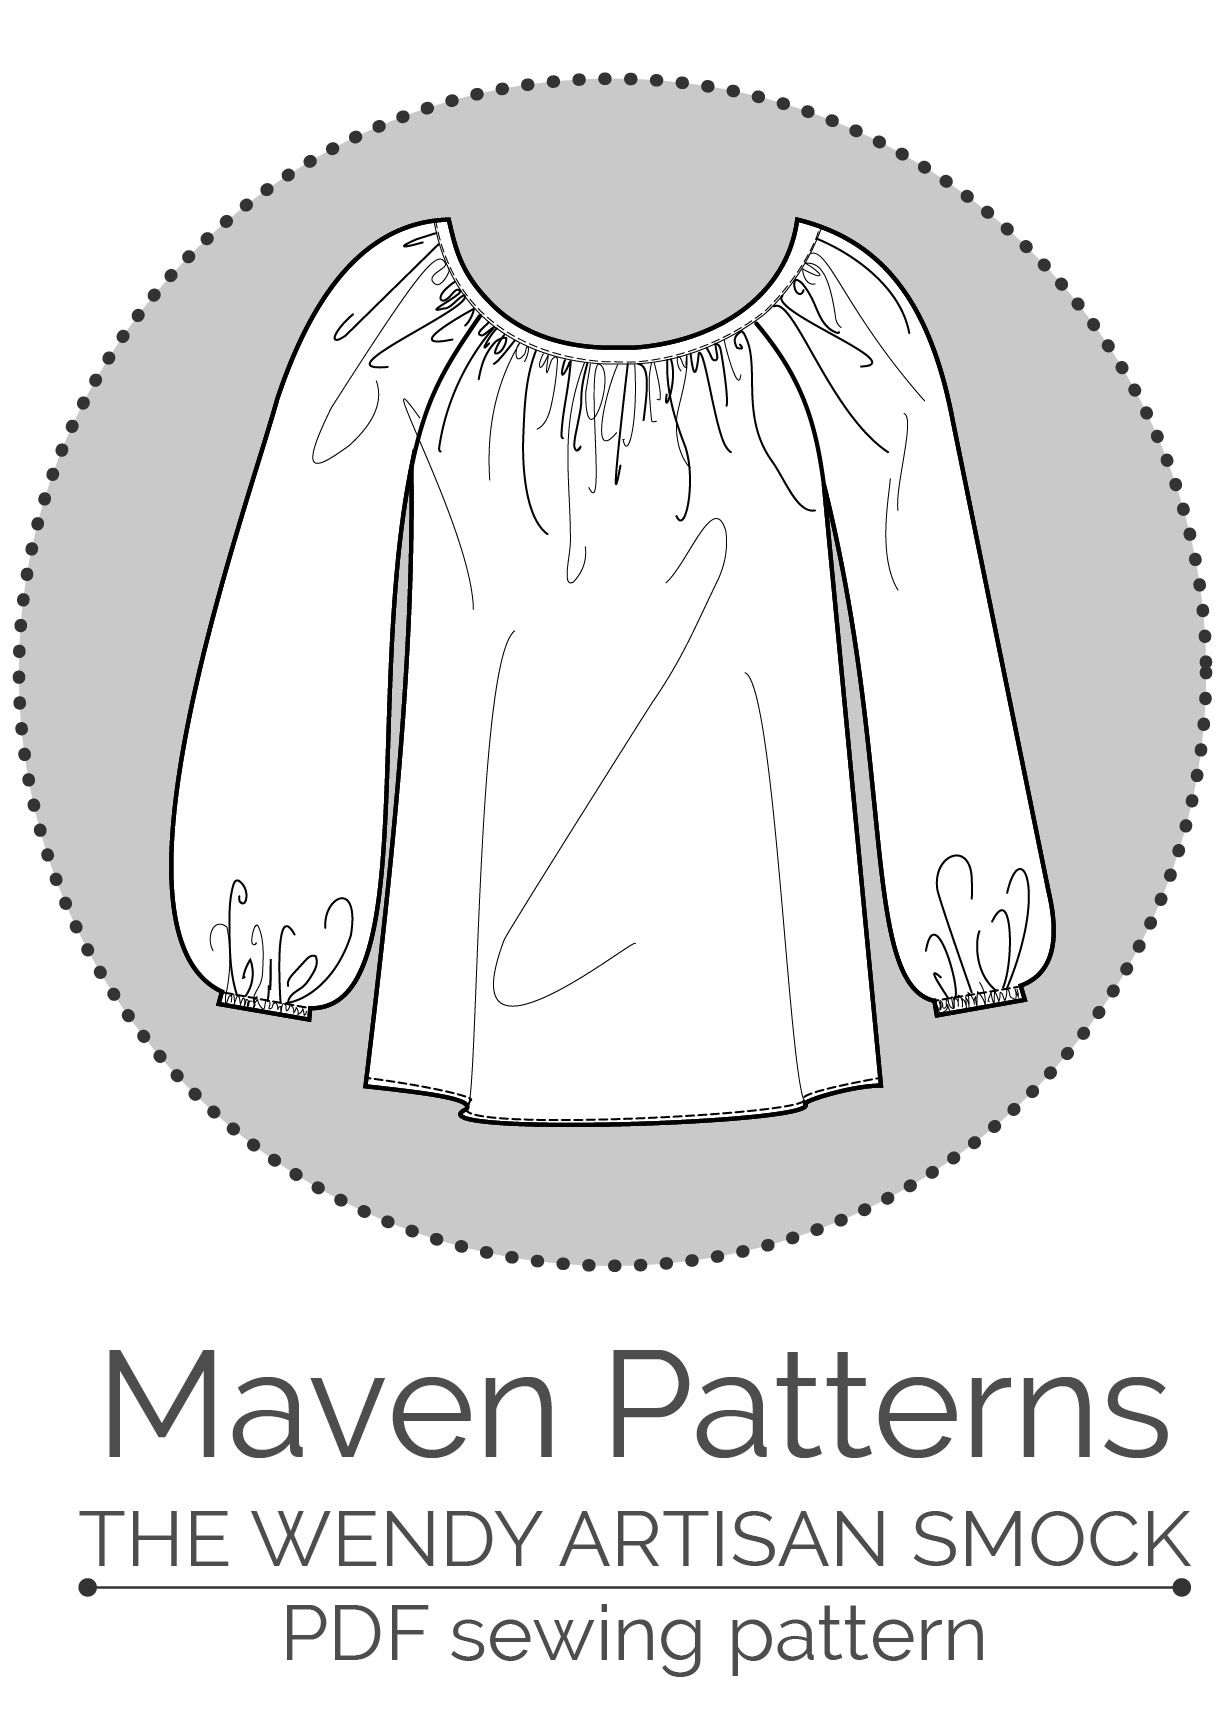 The Wendy Artisan smock - PDF SEWING PATTERN BY MAVEN PATTERNS | See ...